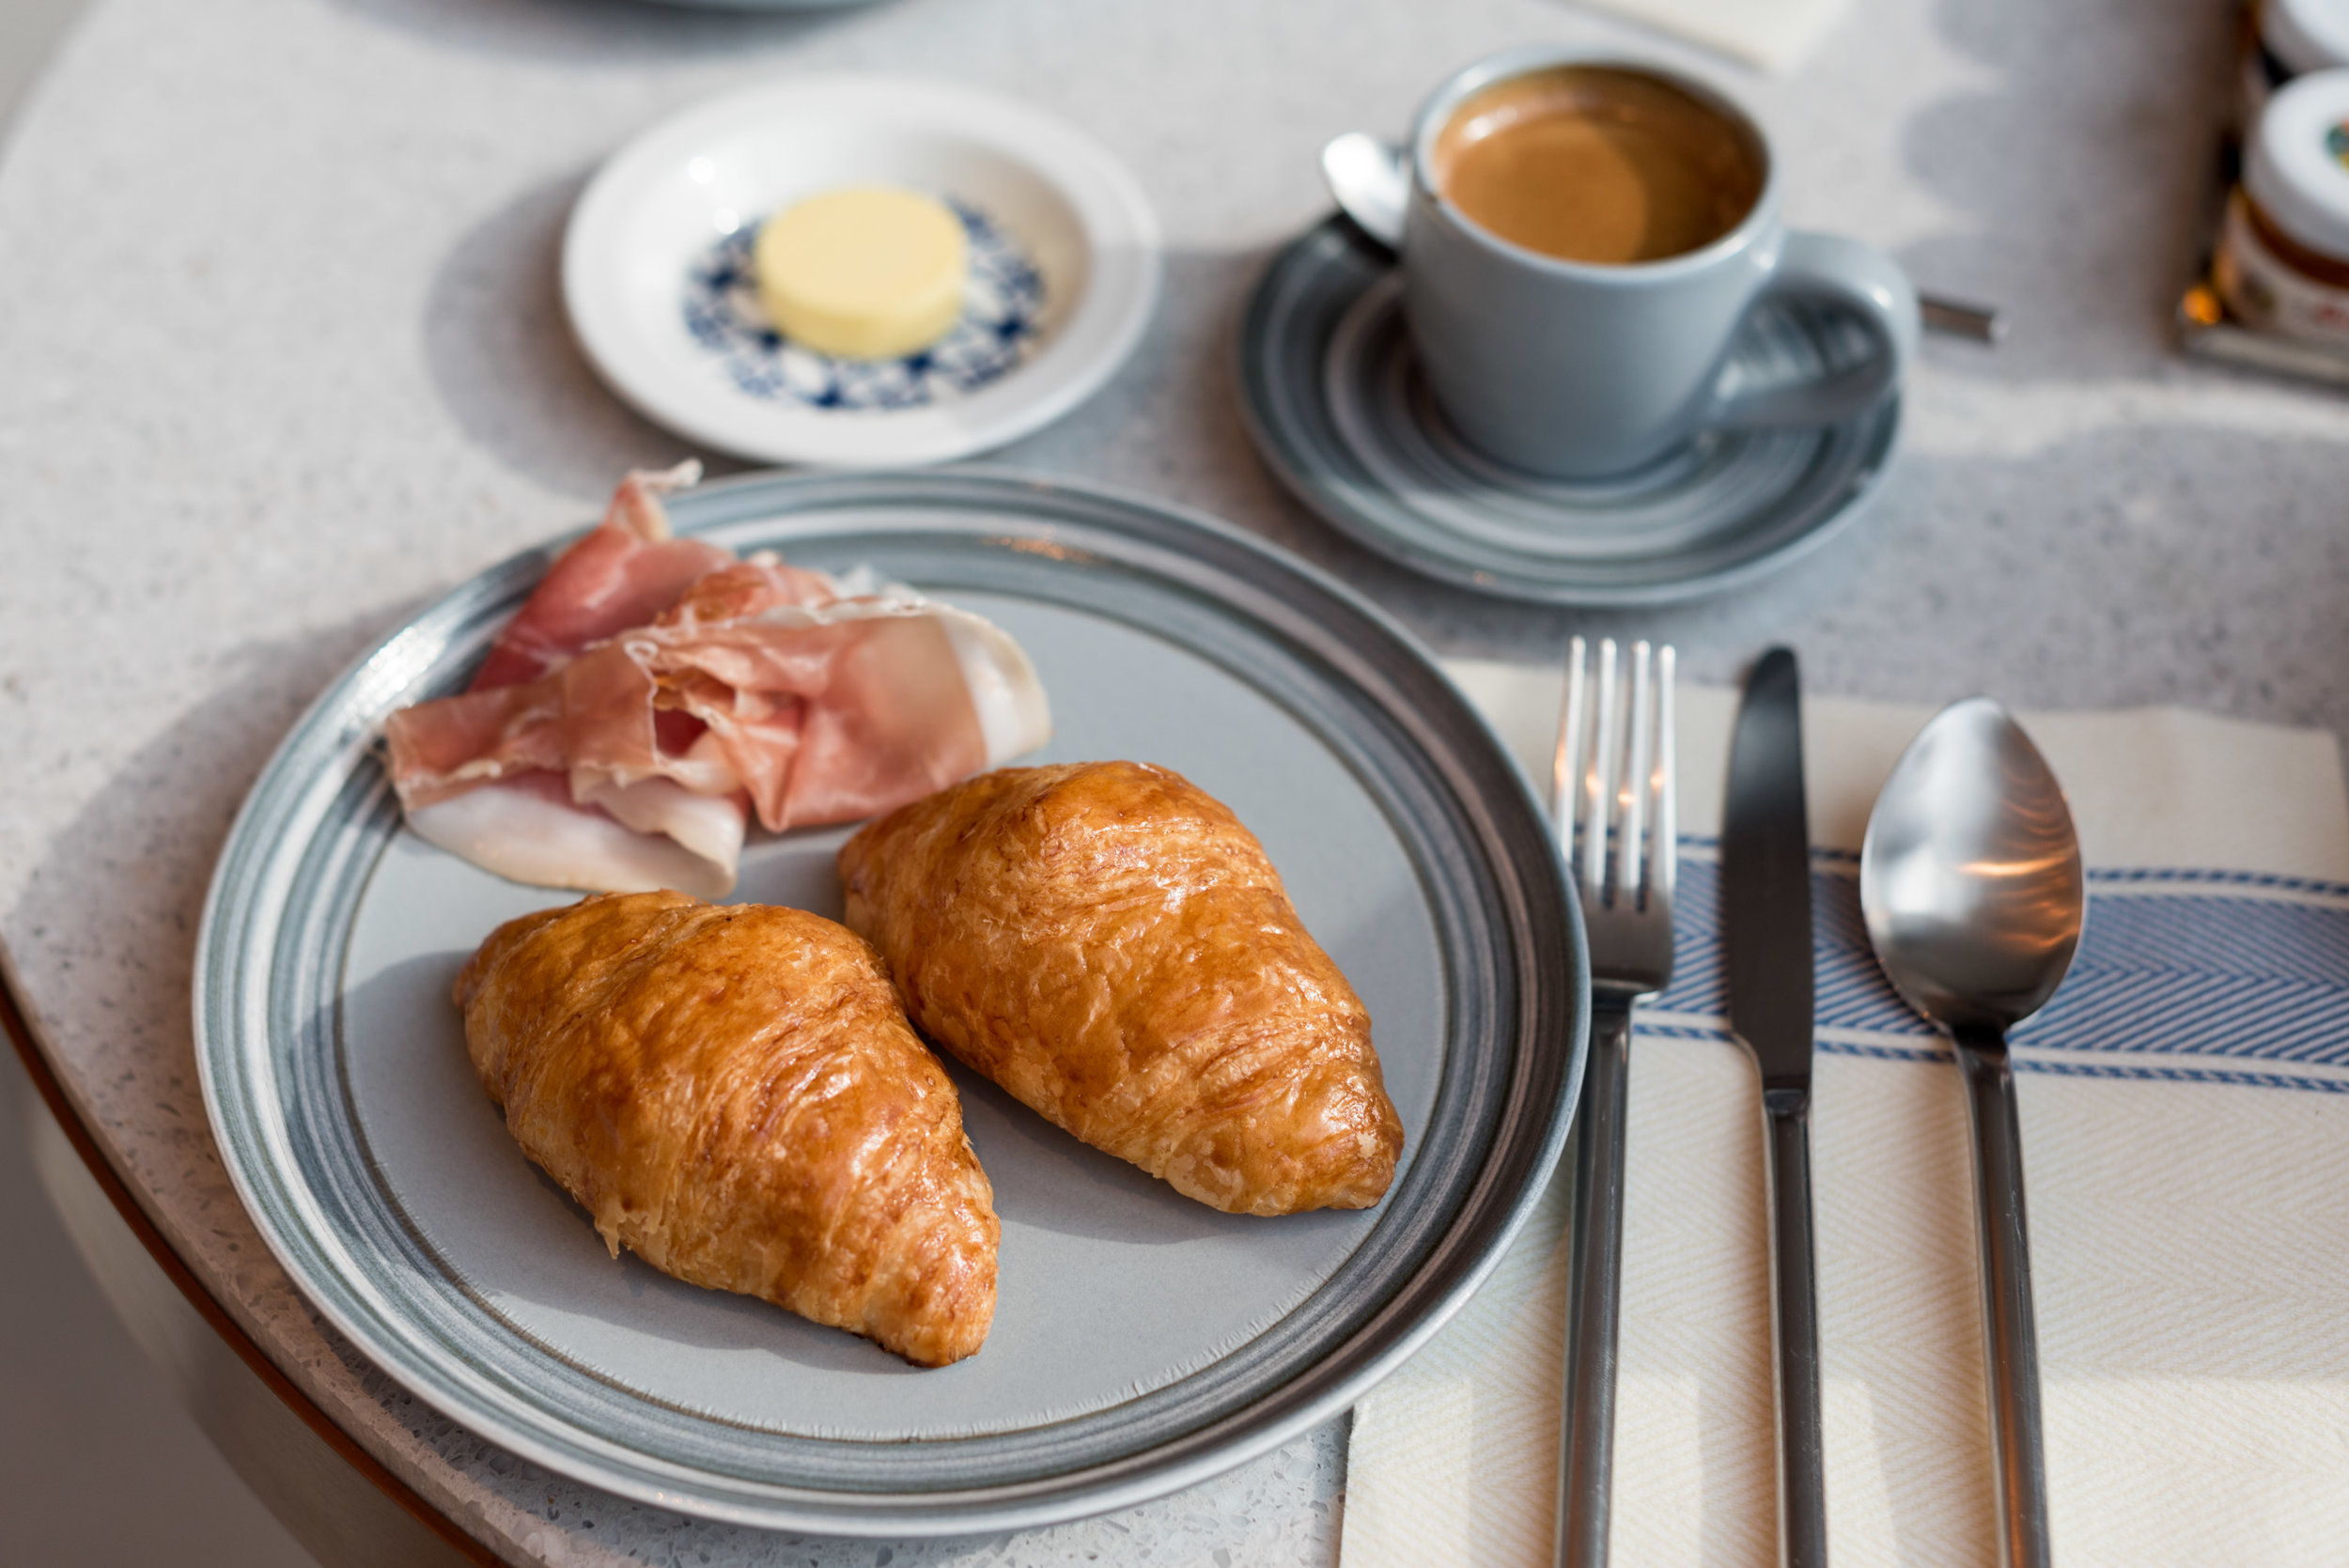 Croissants and Cold Cuts - Breakfast  Icehaus - Andaz Singapore